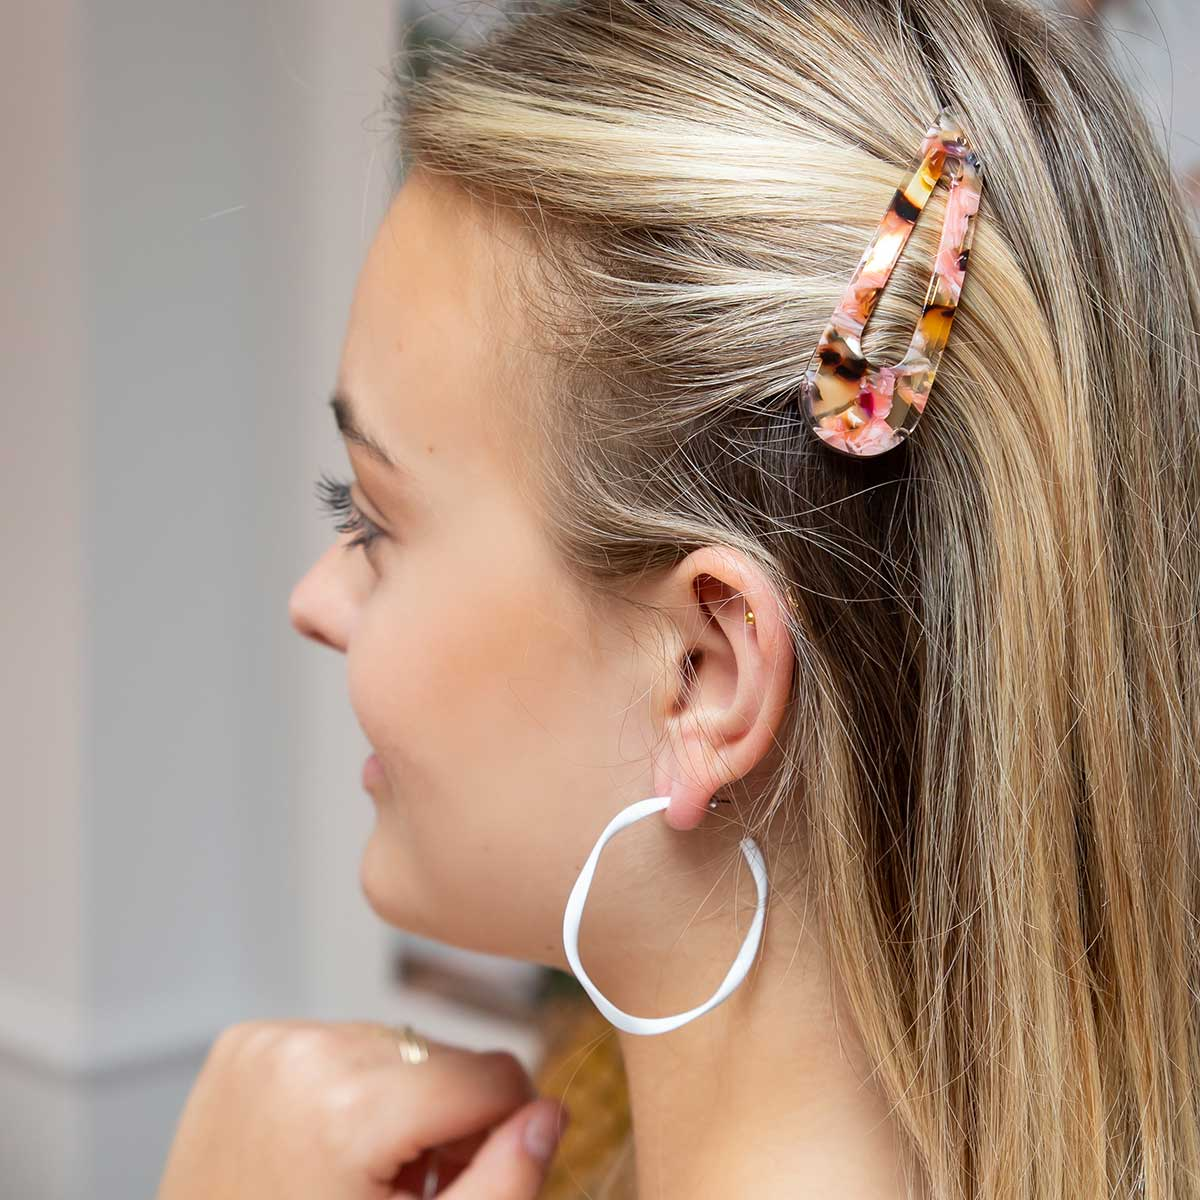 model-wearing-tallulah-tortie-hair-clip-and-white-hoop-earrings.jpg